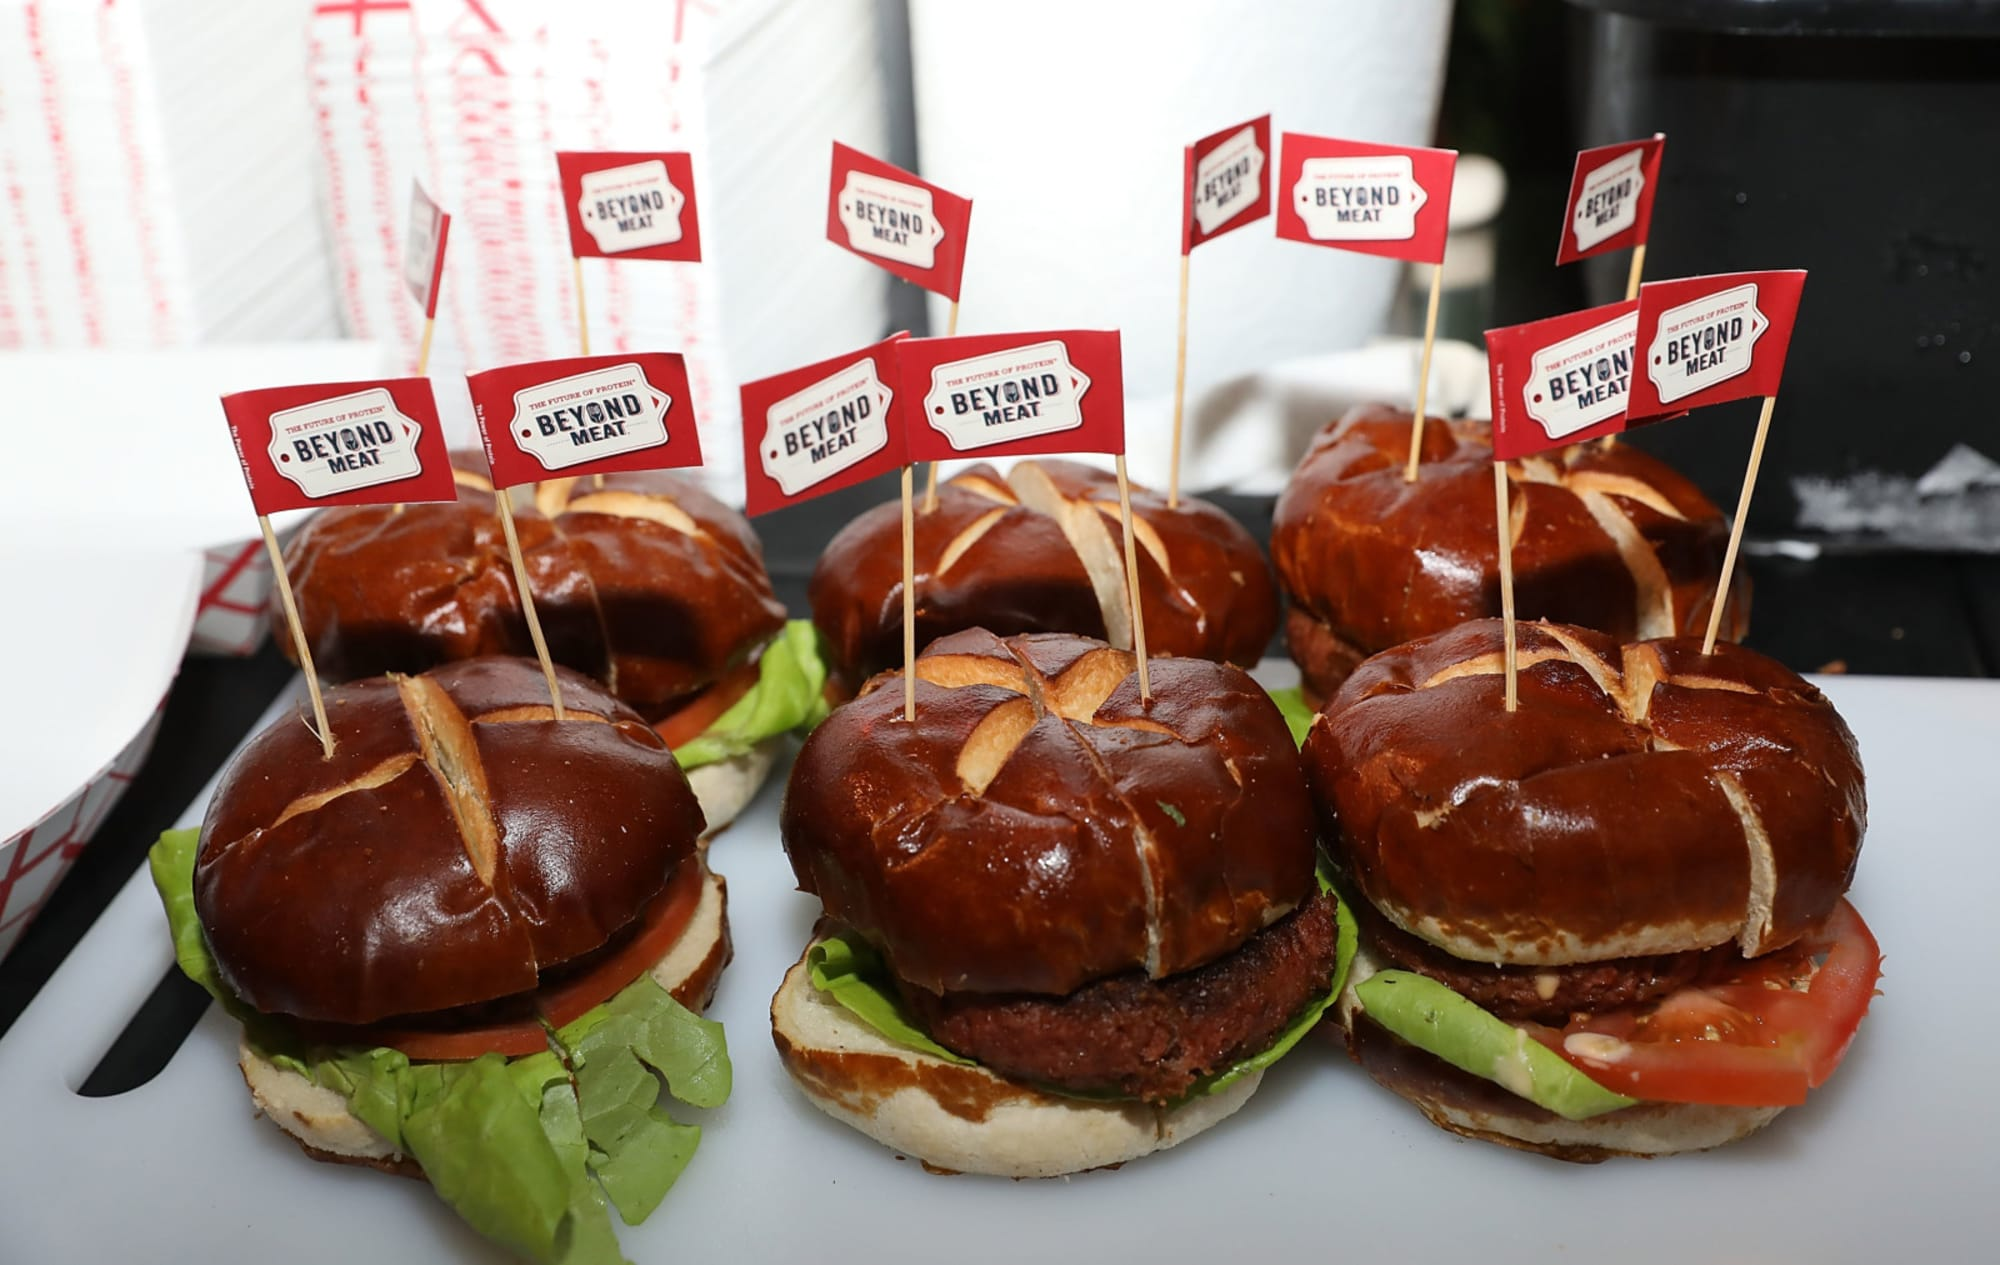 California Cookout Classic Burger recipe will change your grilling perspective